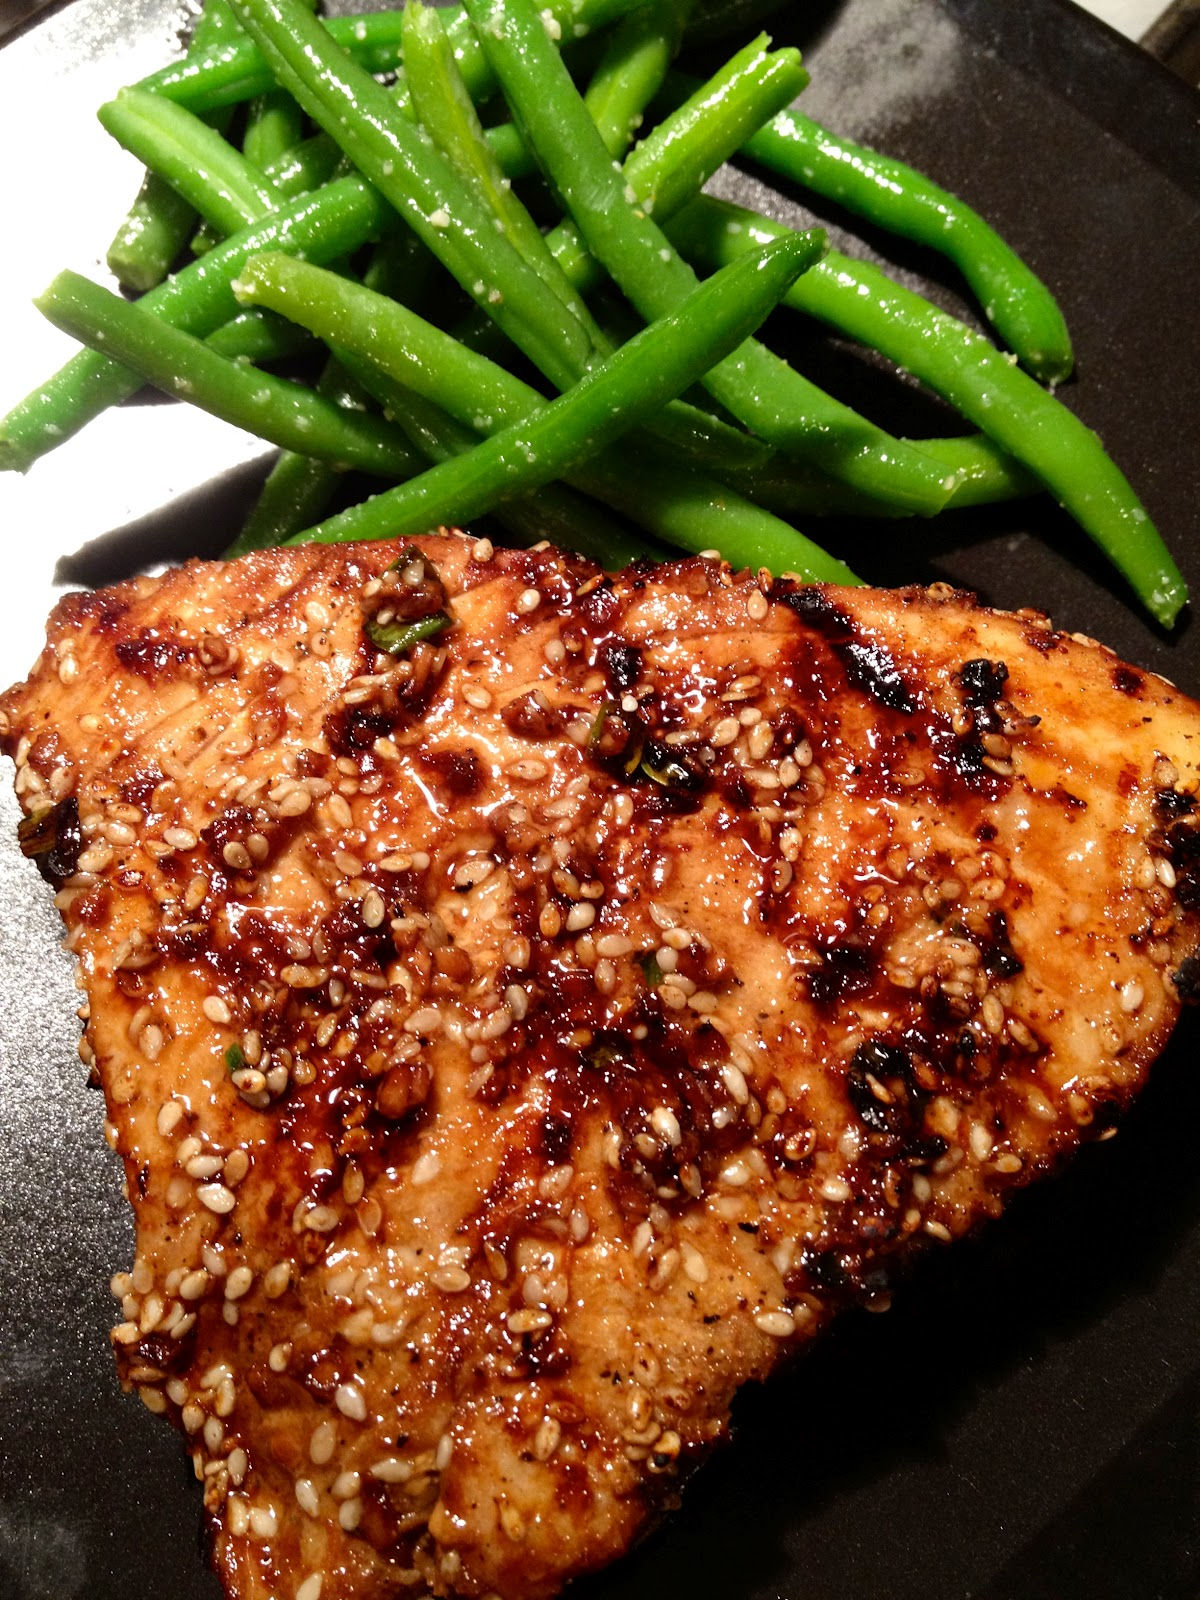 grill to medium high heat and oil the grates grill tuna steak for 3 ...